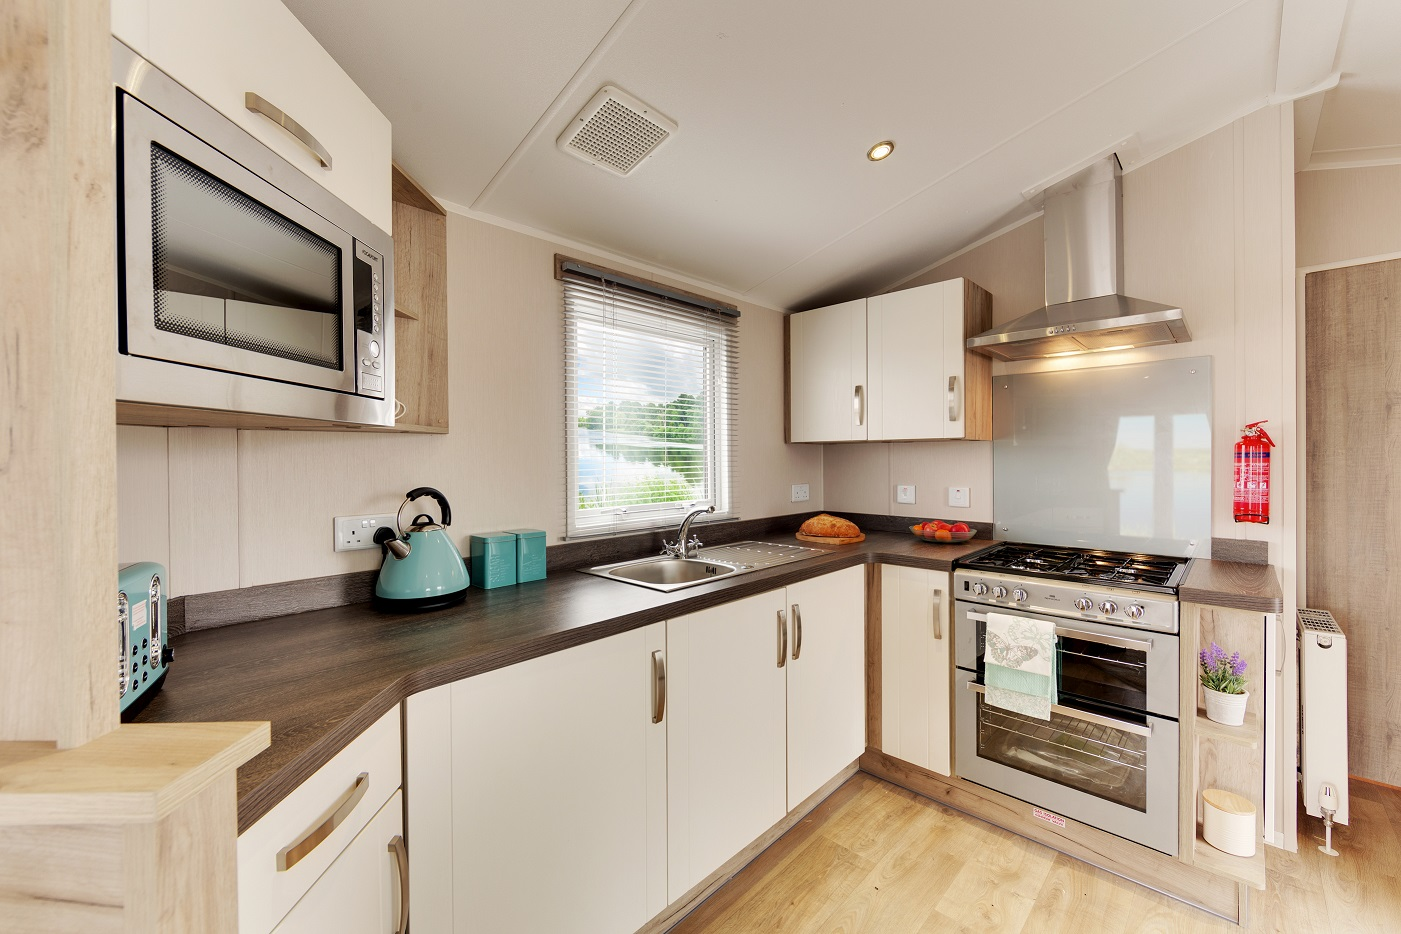 Willerby Skye: Static Caravans and Holiday Homes for Sale on Caravan Parks, Harrogate, North Yorkshire Large Image 2